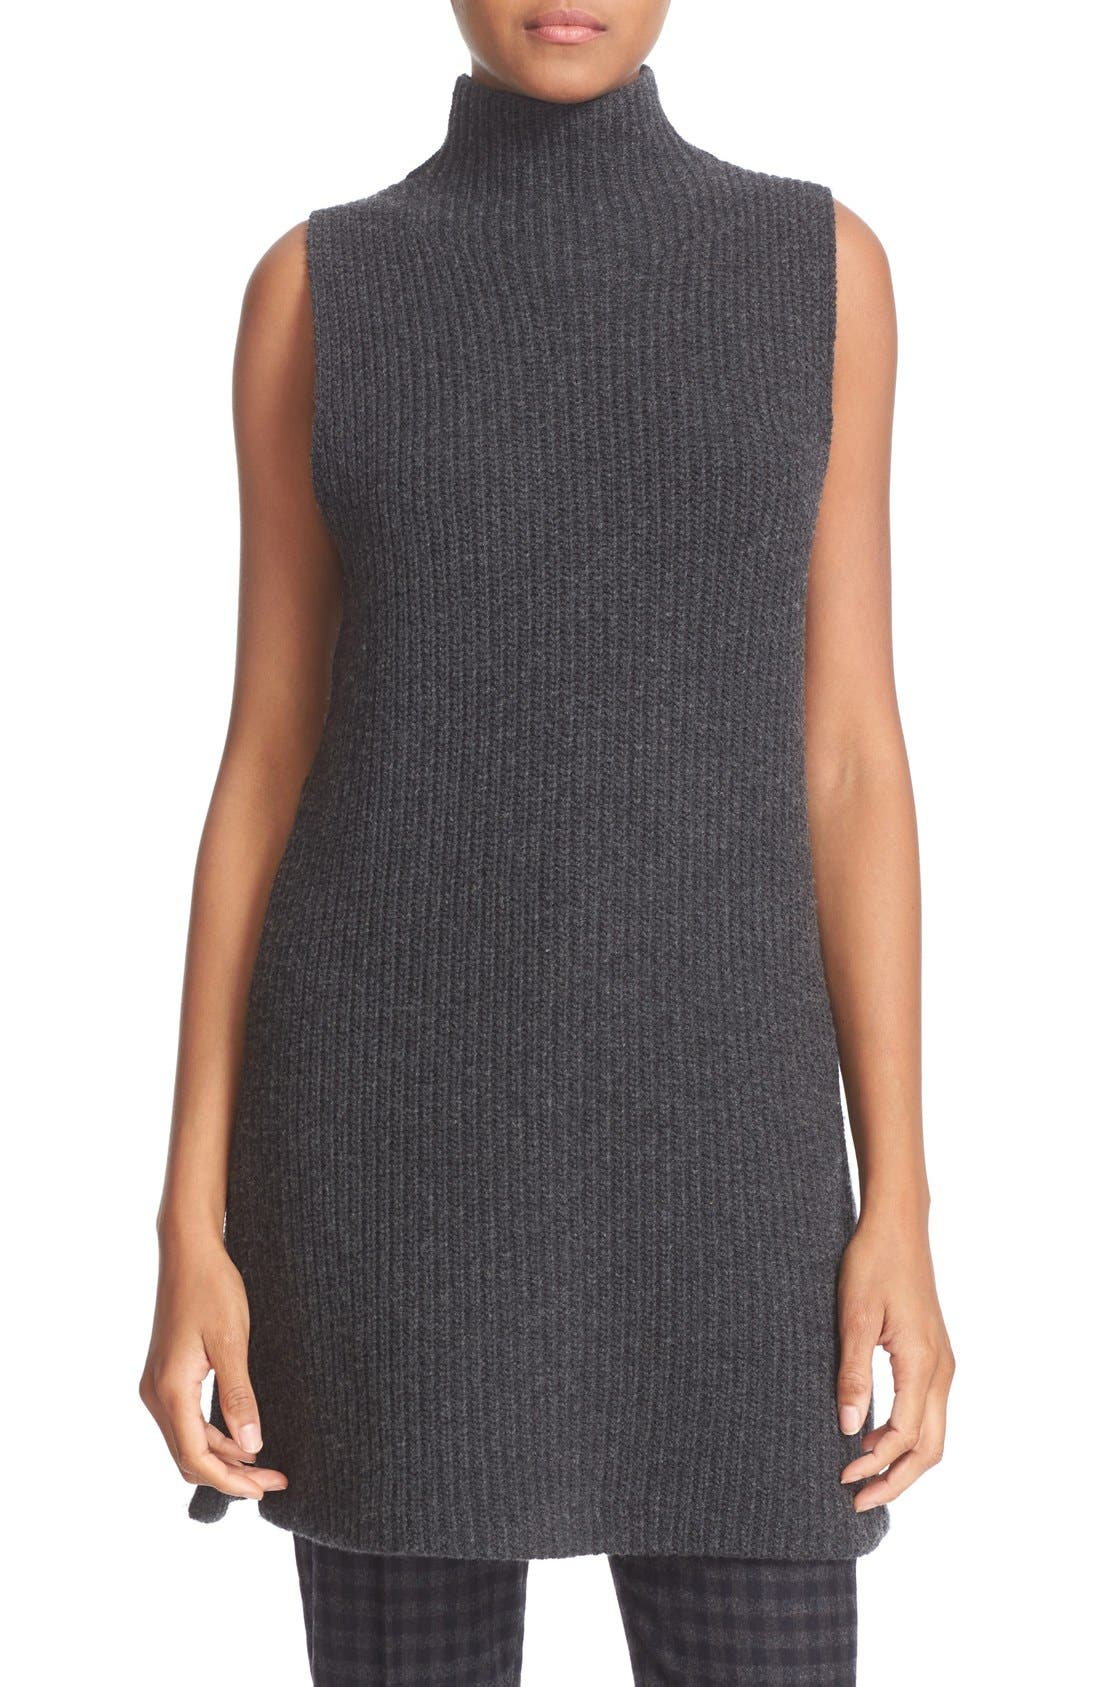 THEORY,                             'Embree Charmant' Sleeveless Wool & Cashmere Mock Neck Tunic Sweater,                             Main thumbnail 1, color,                             200